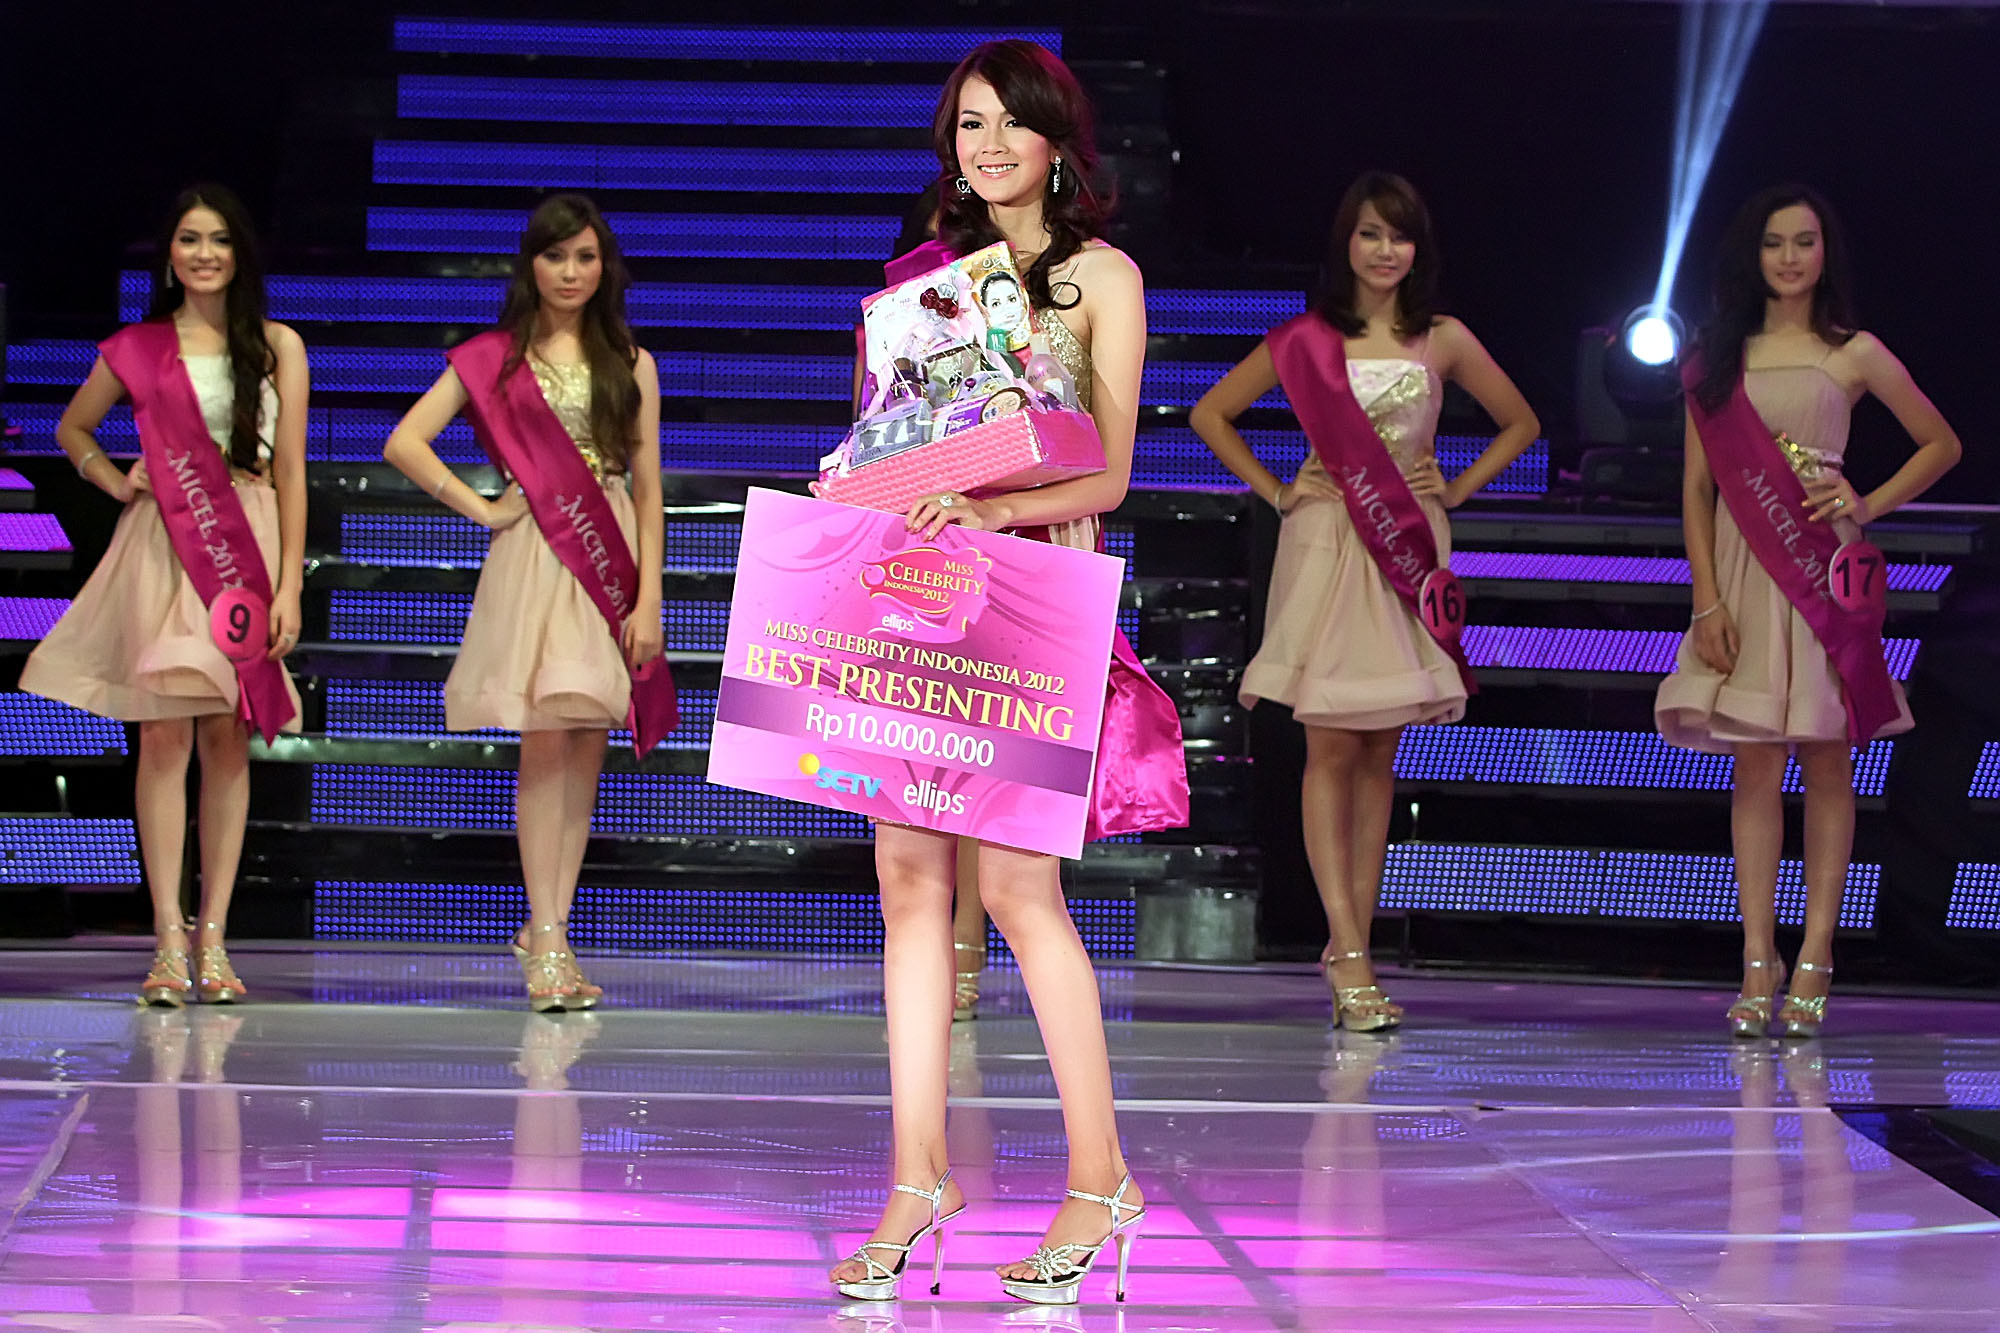 Pemenang Miss Celebrity Indonesia 2011, Sirena Elizabeth ...